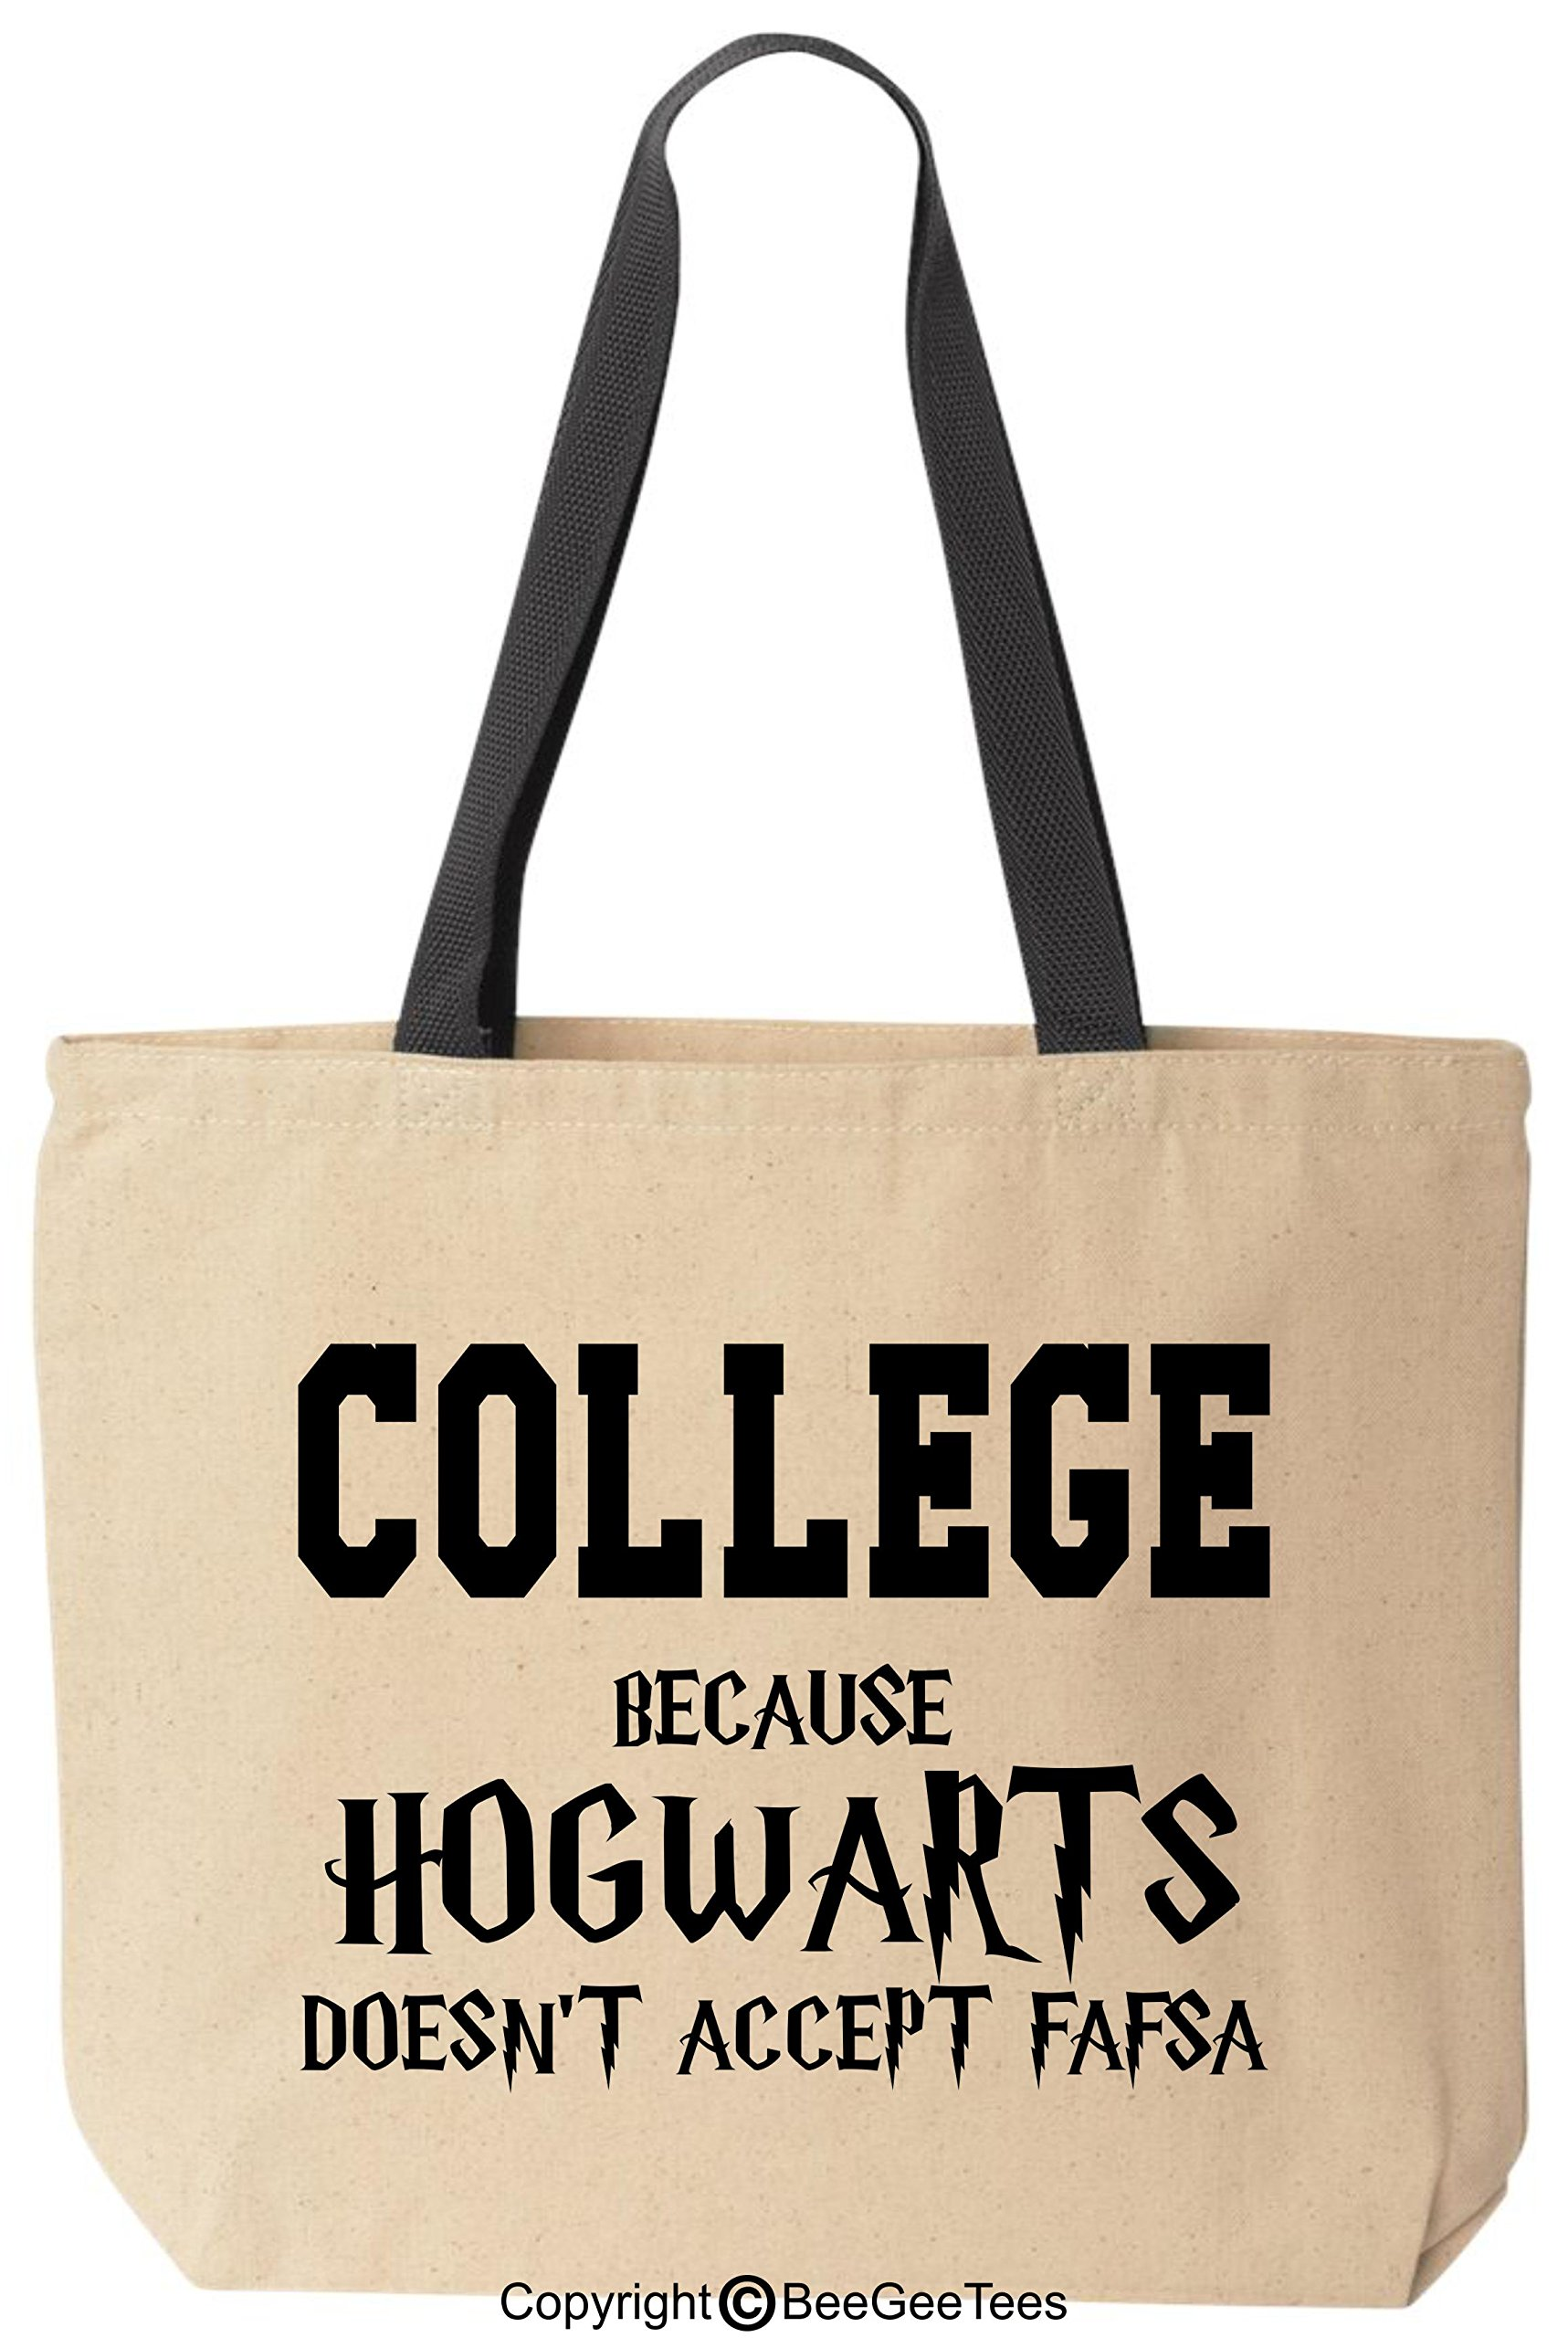 COLLEGE Because Hogwarts doesn't accept FAFSA Funny Harry Potter Reusable Canvas Tote Bag by BeeGeeTees (Black Handle)